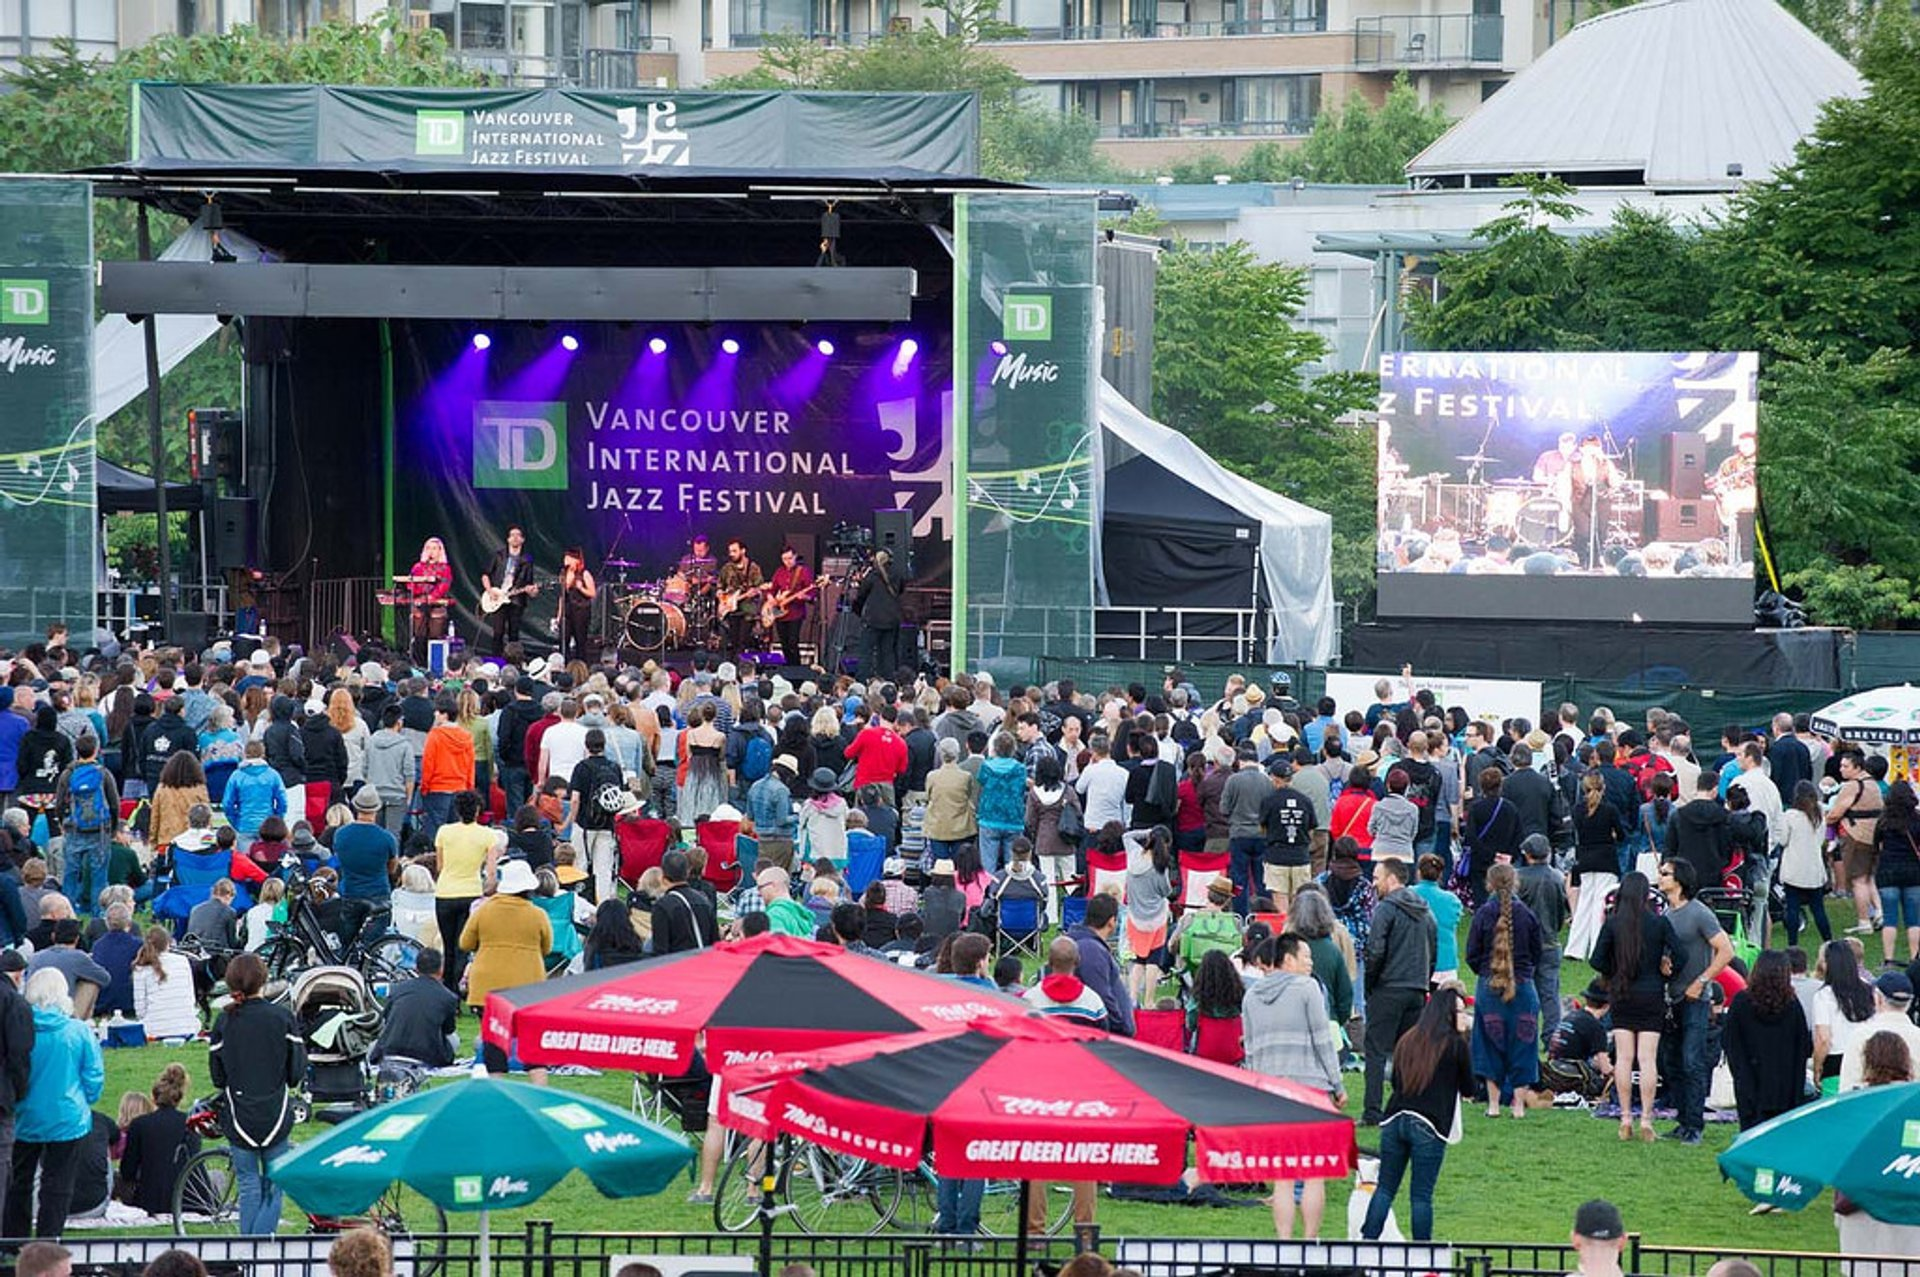 Vancouver International Jazz Festival in Vancouver 2020 - Best Time